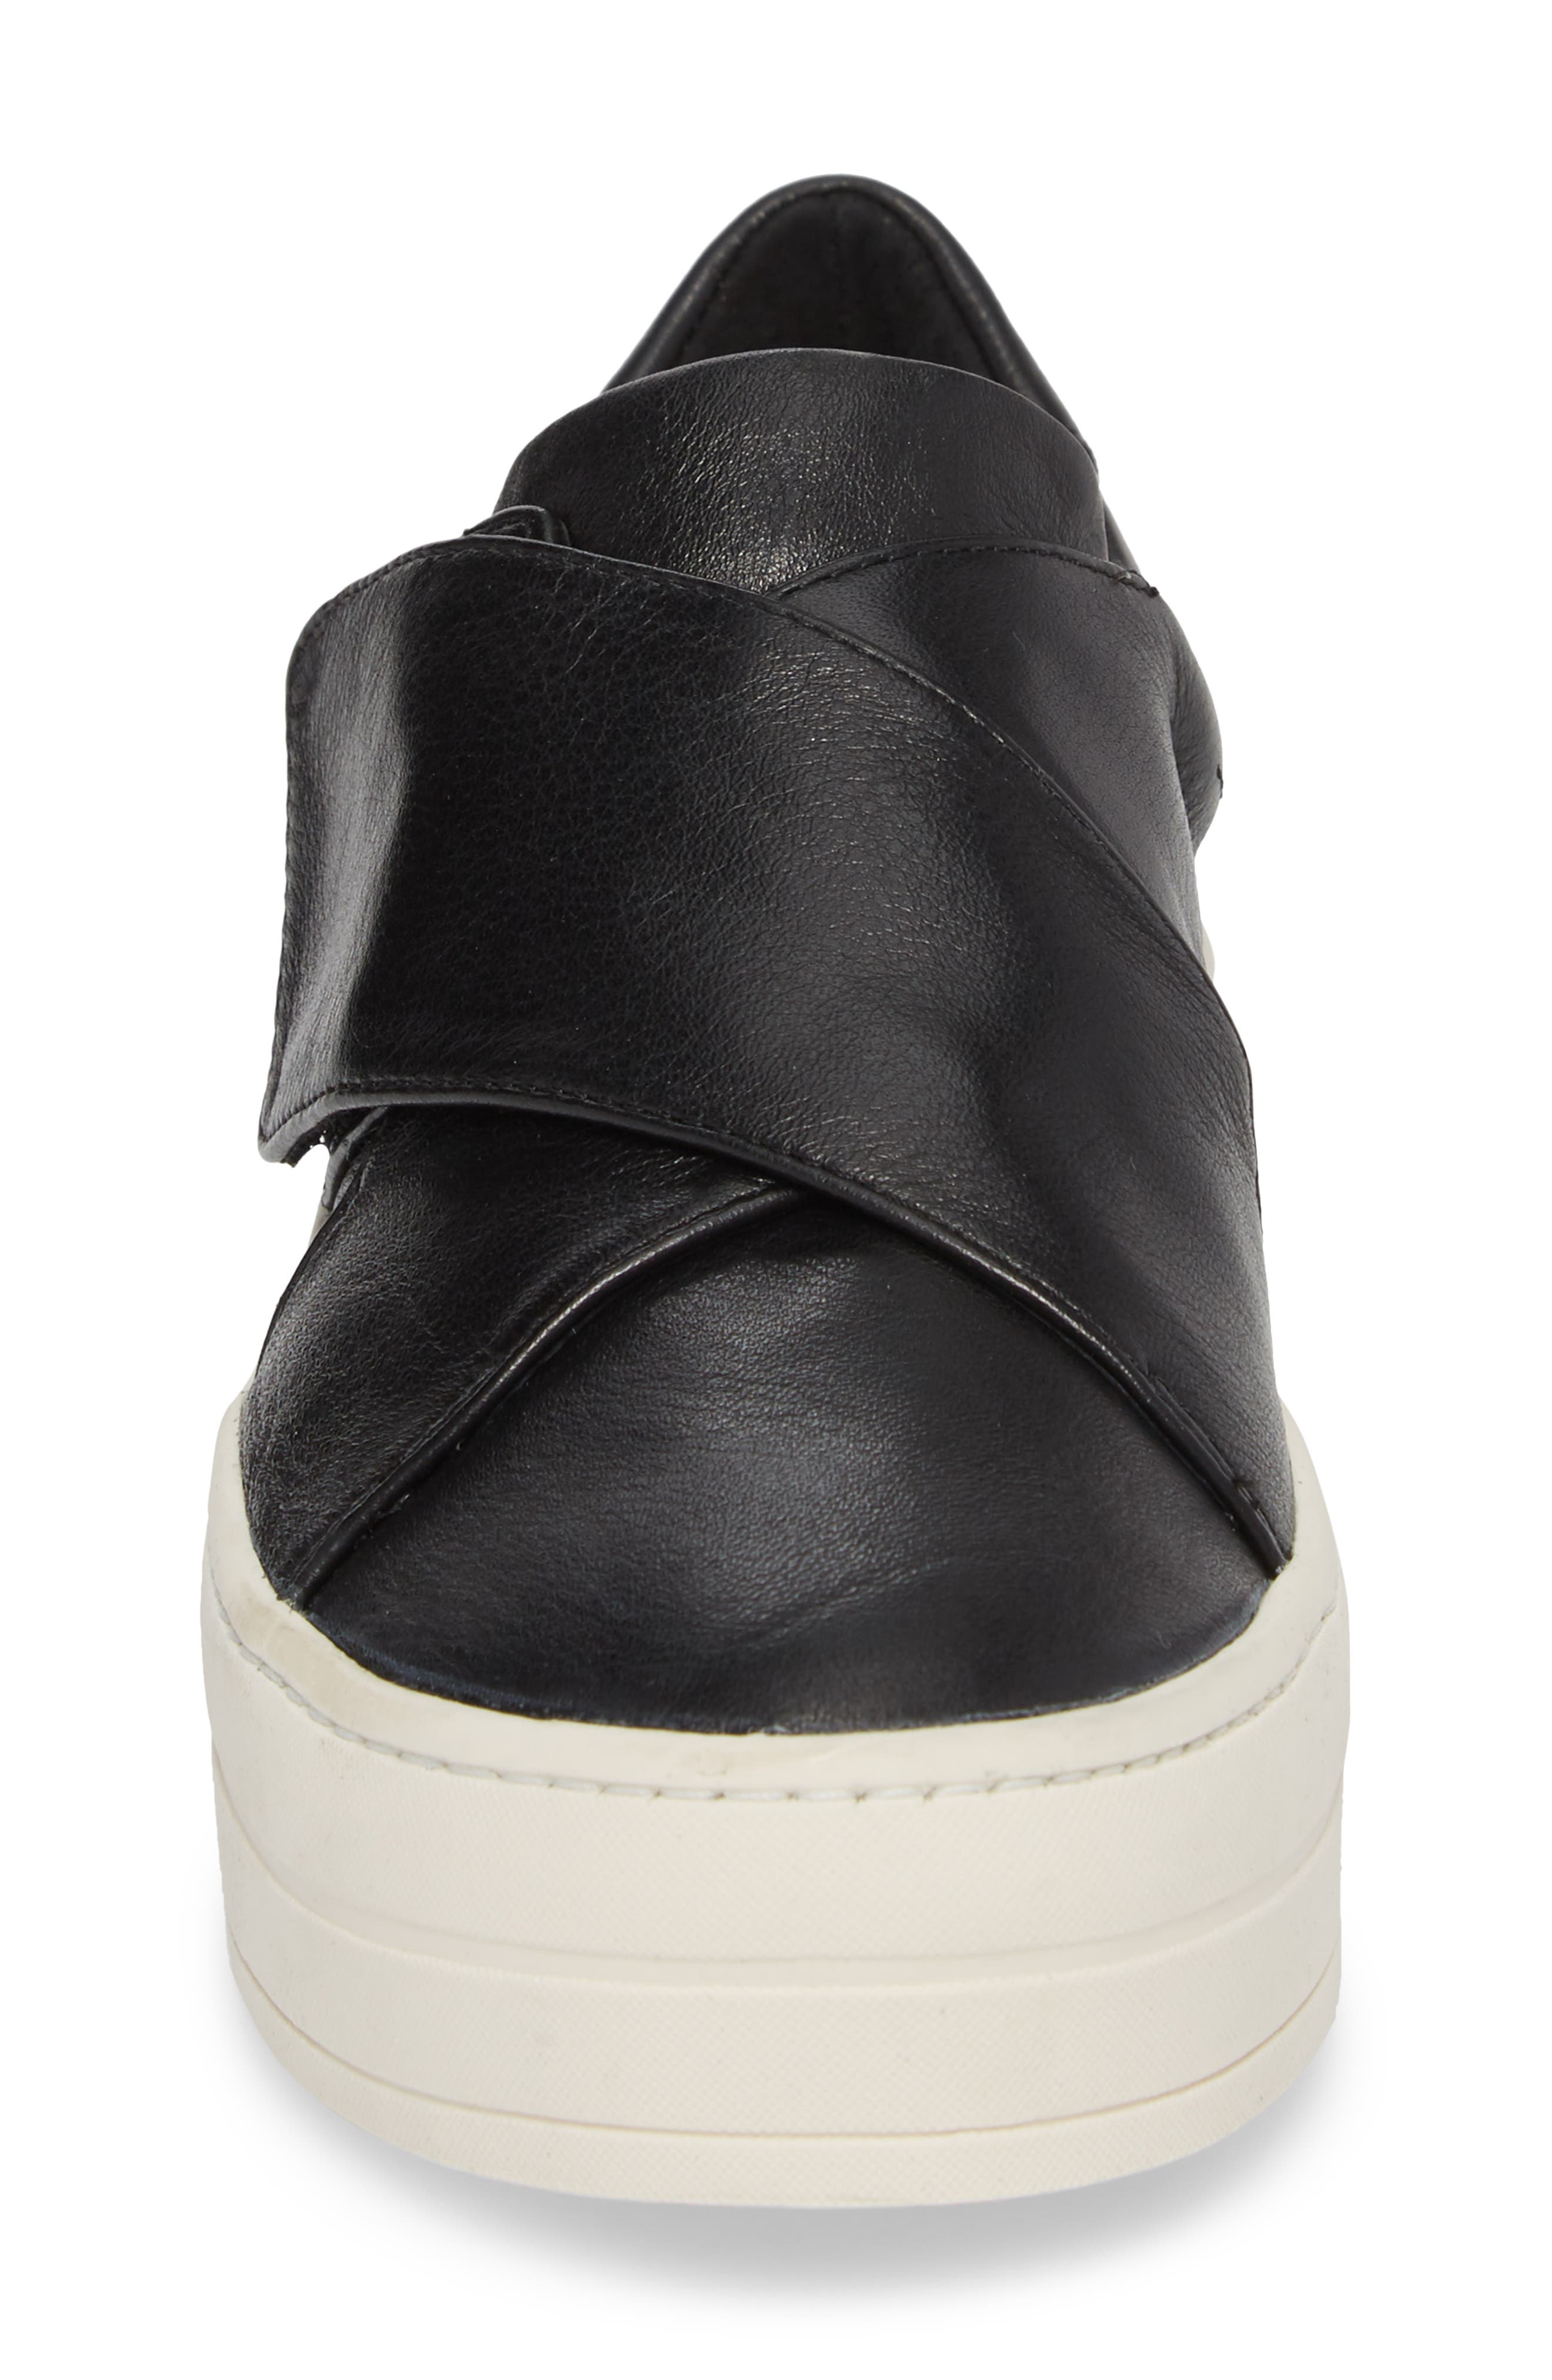 Harper Sneaker,                             Alternate thumbnail 4, color,                             BLACK LEATHER